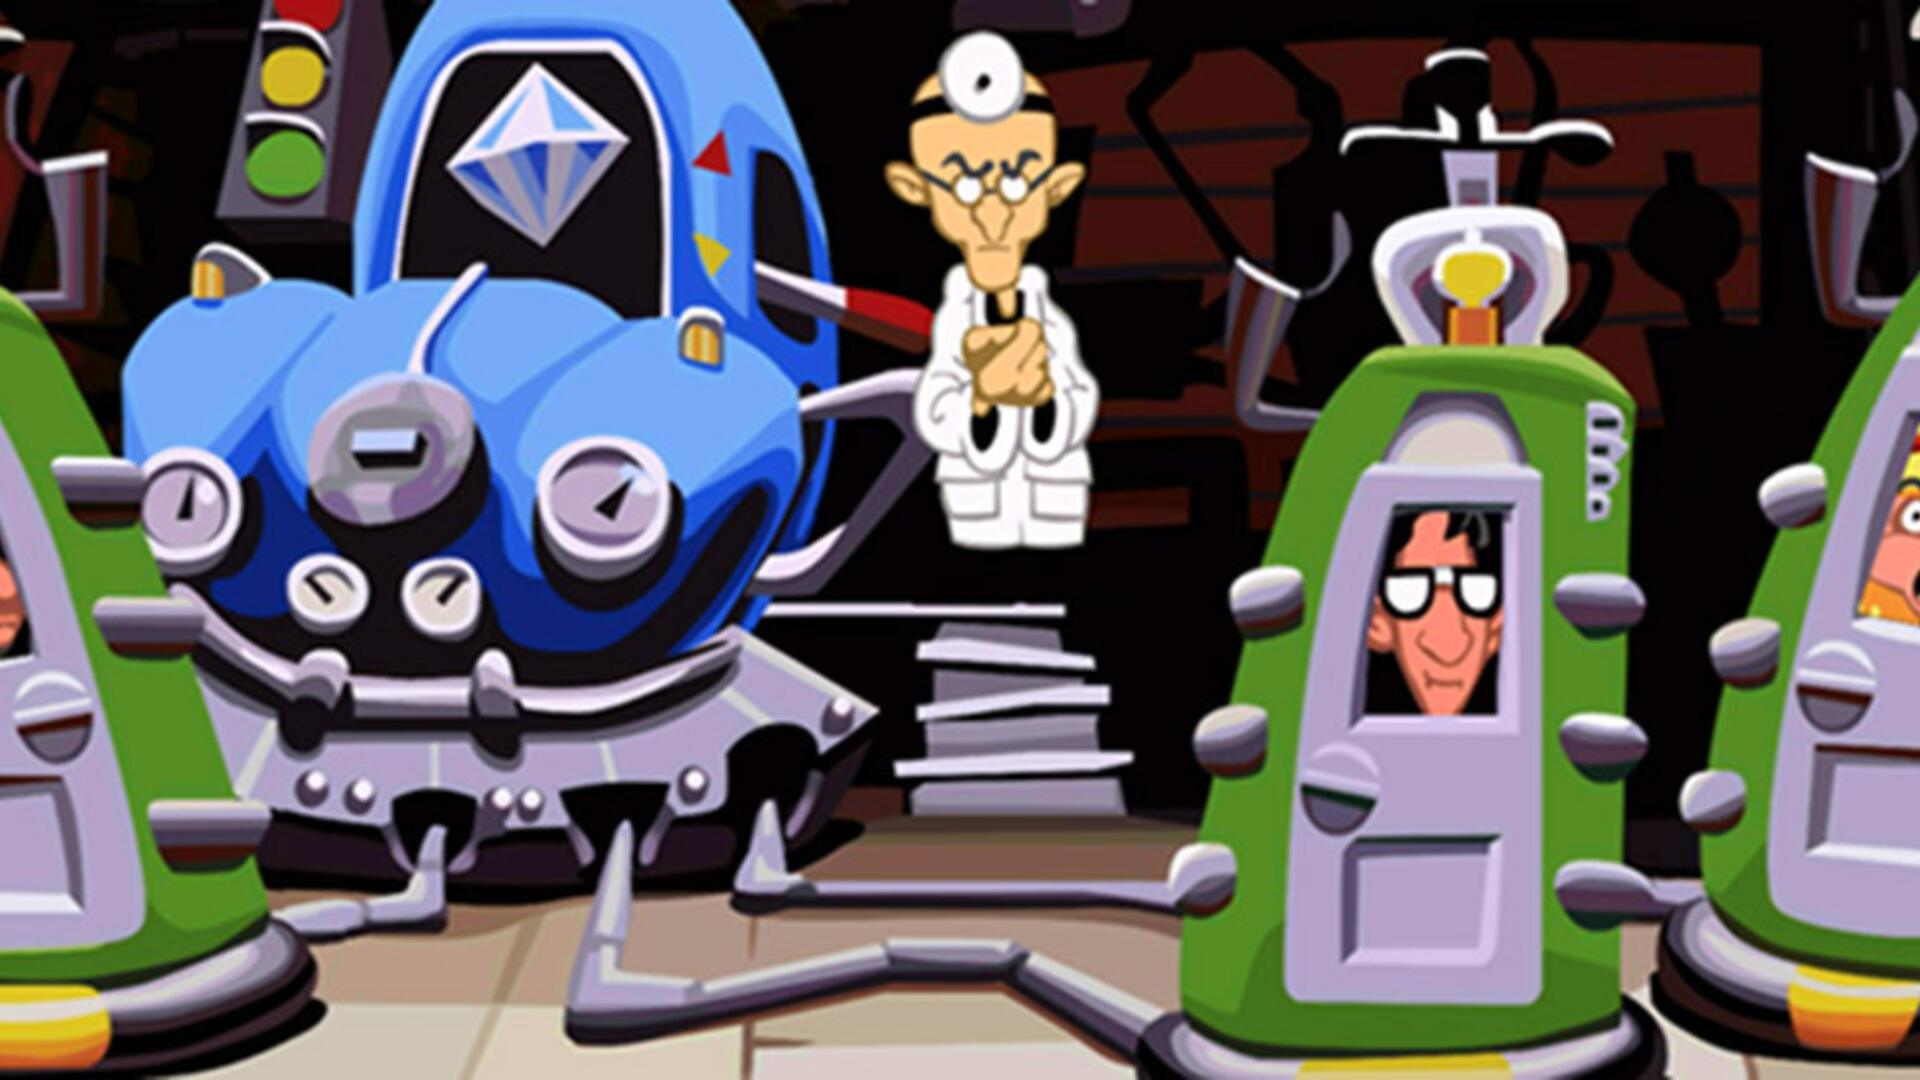 Behind the Art of Day of the Tentacle